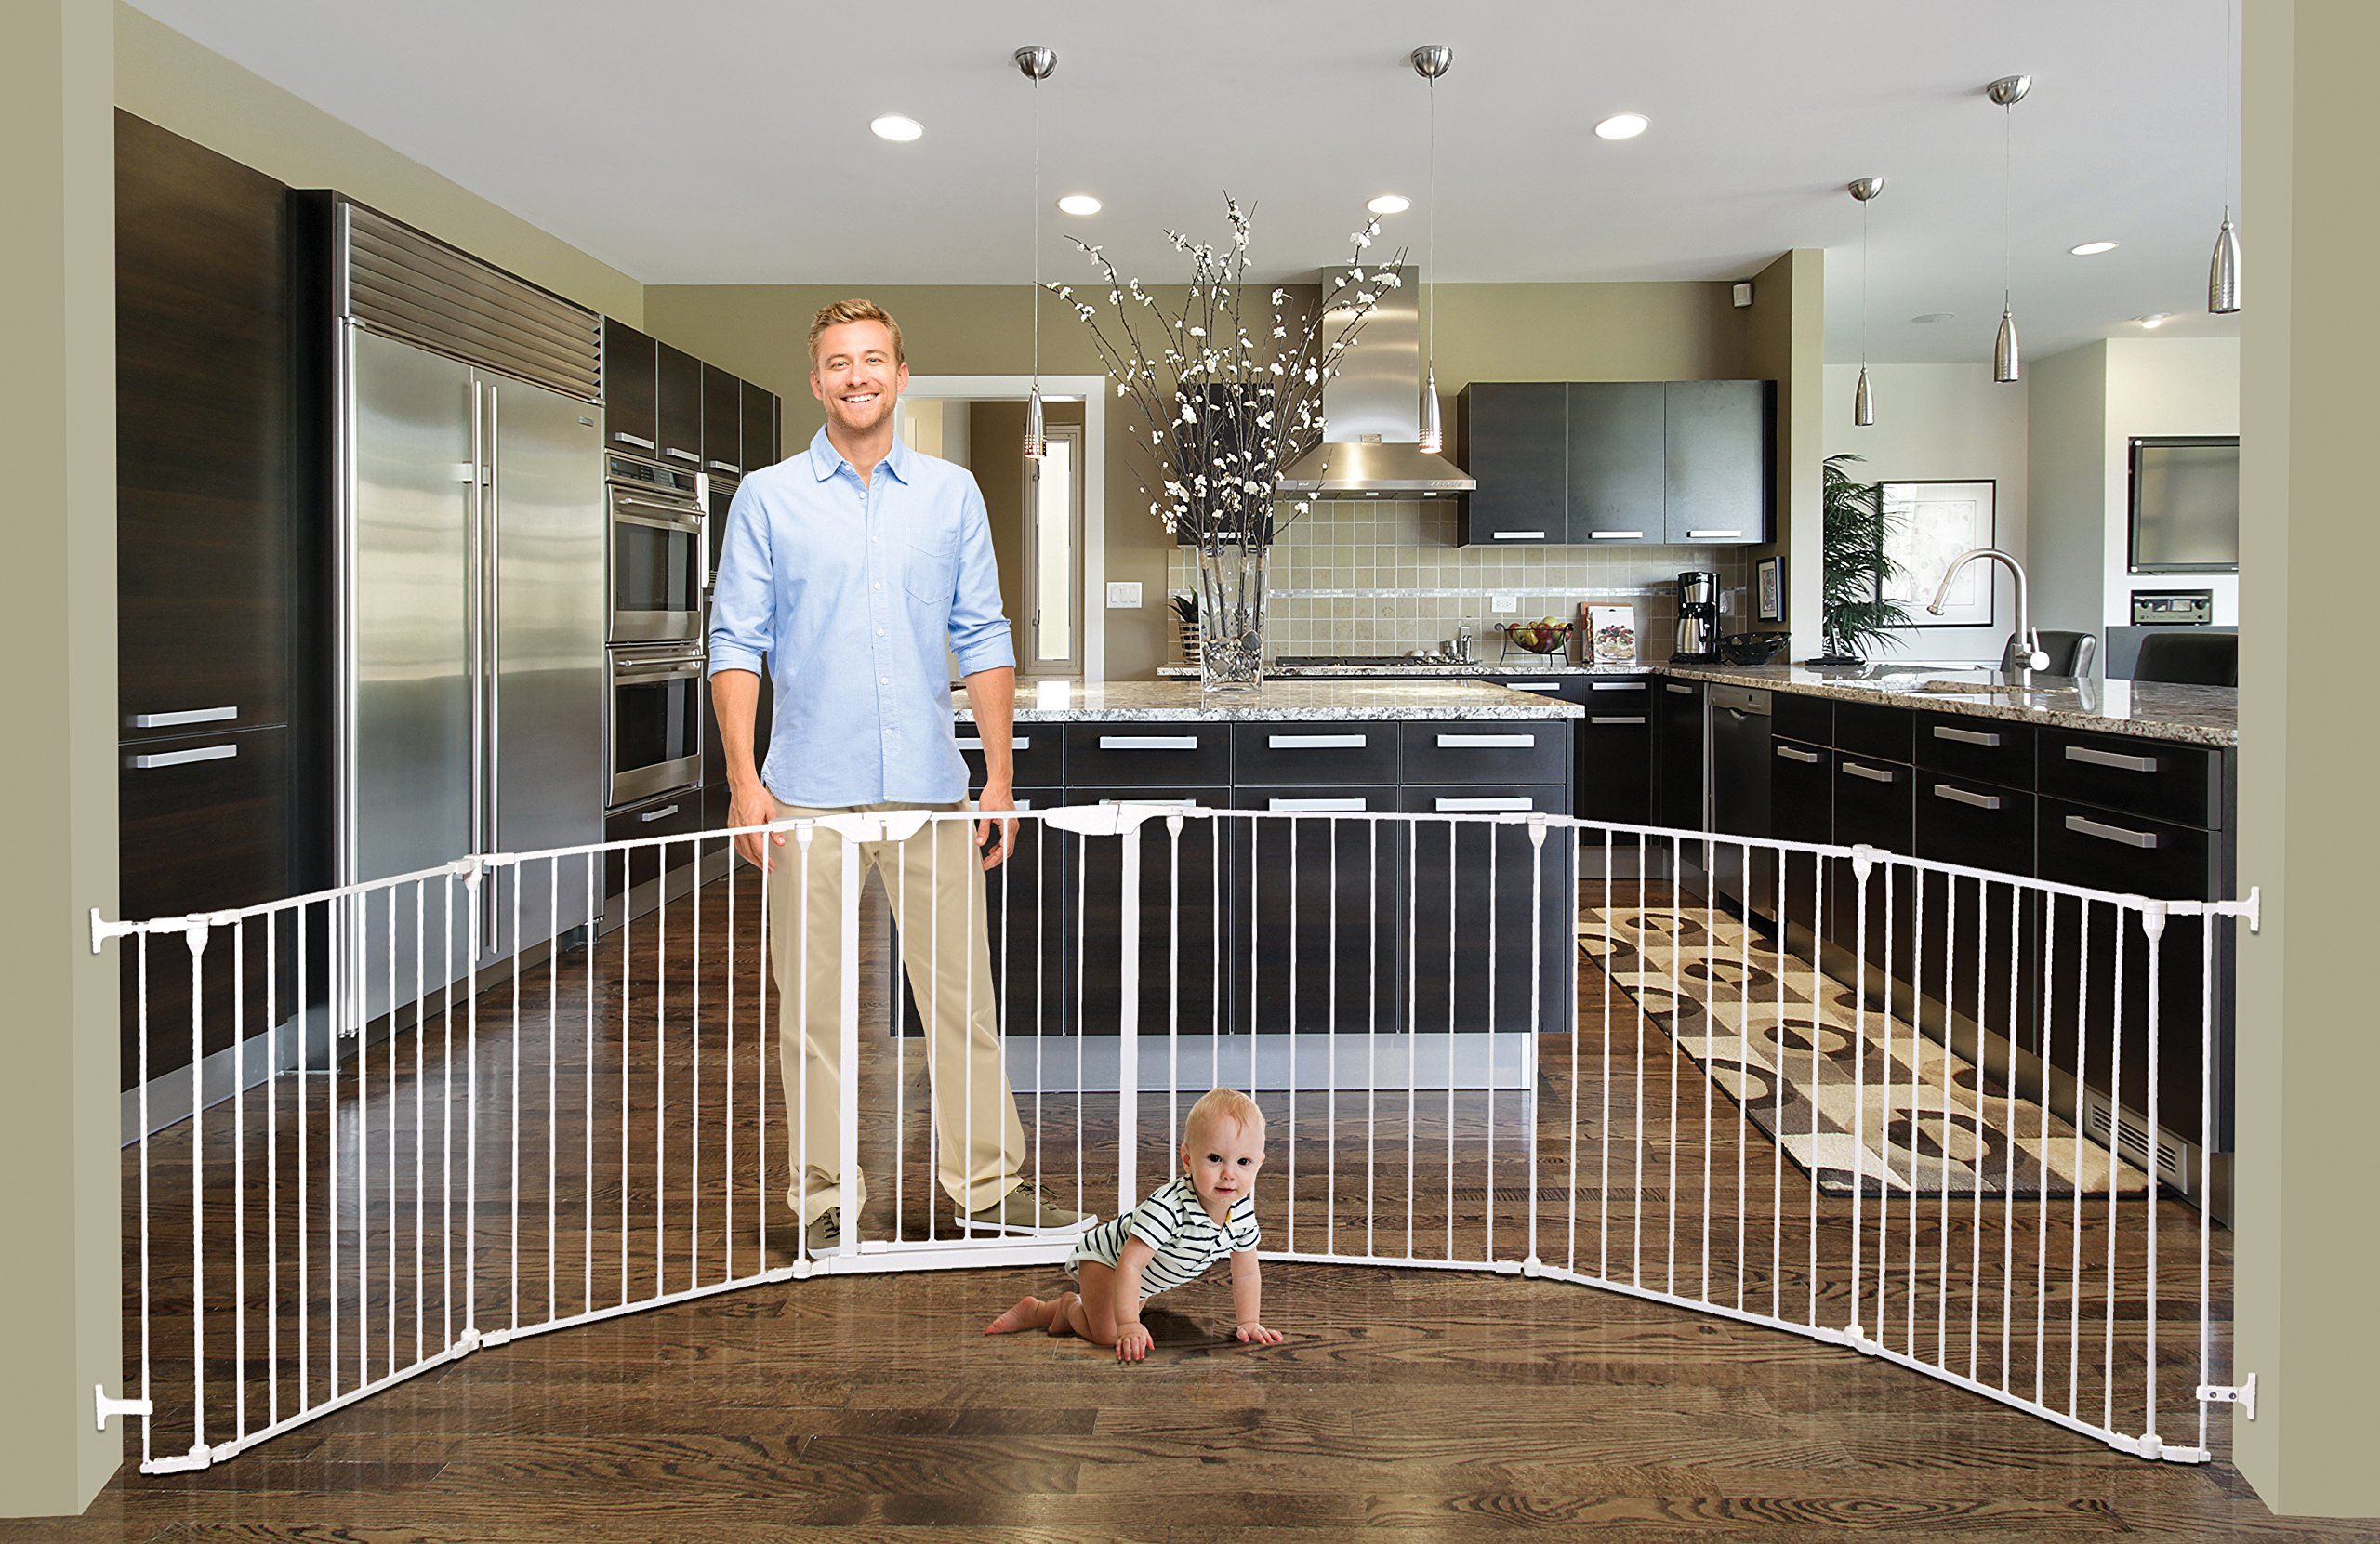 Dreambaby Mayfair Converta 3-in-1 Metal Play-Pen (85.5 - 375 cm) Dreambaby 6 modular panels including convient walk-through Gate 3-in-1 (play-pen, fireplace barrier, wide barrier Gate) Smart stey-open feature and optional one way stopper 4